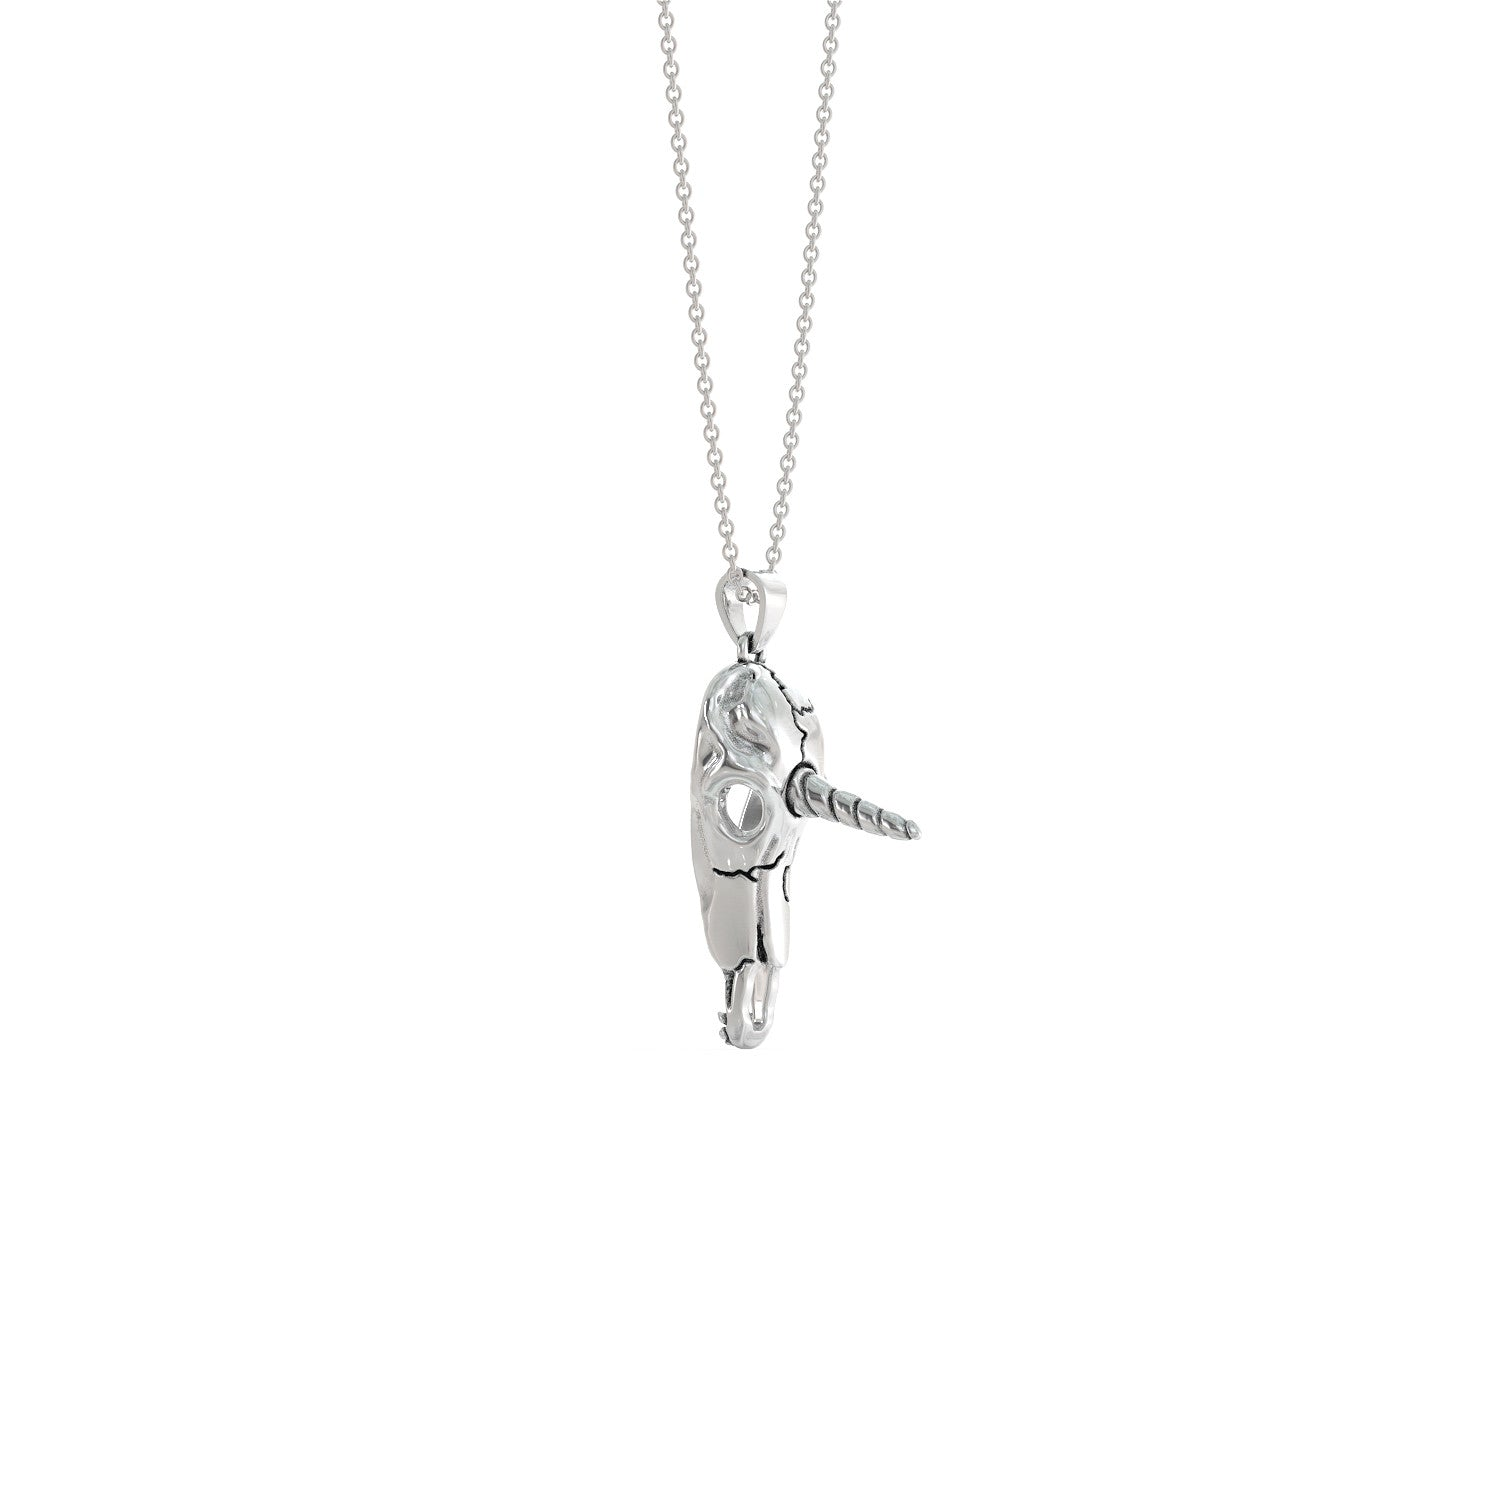 Unicorn Skull Necklace - STRICTLY LIMITED EDITION